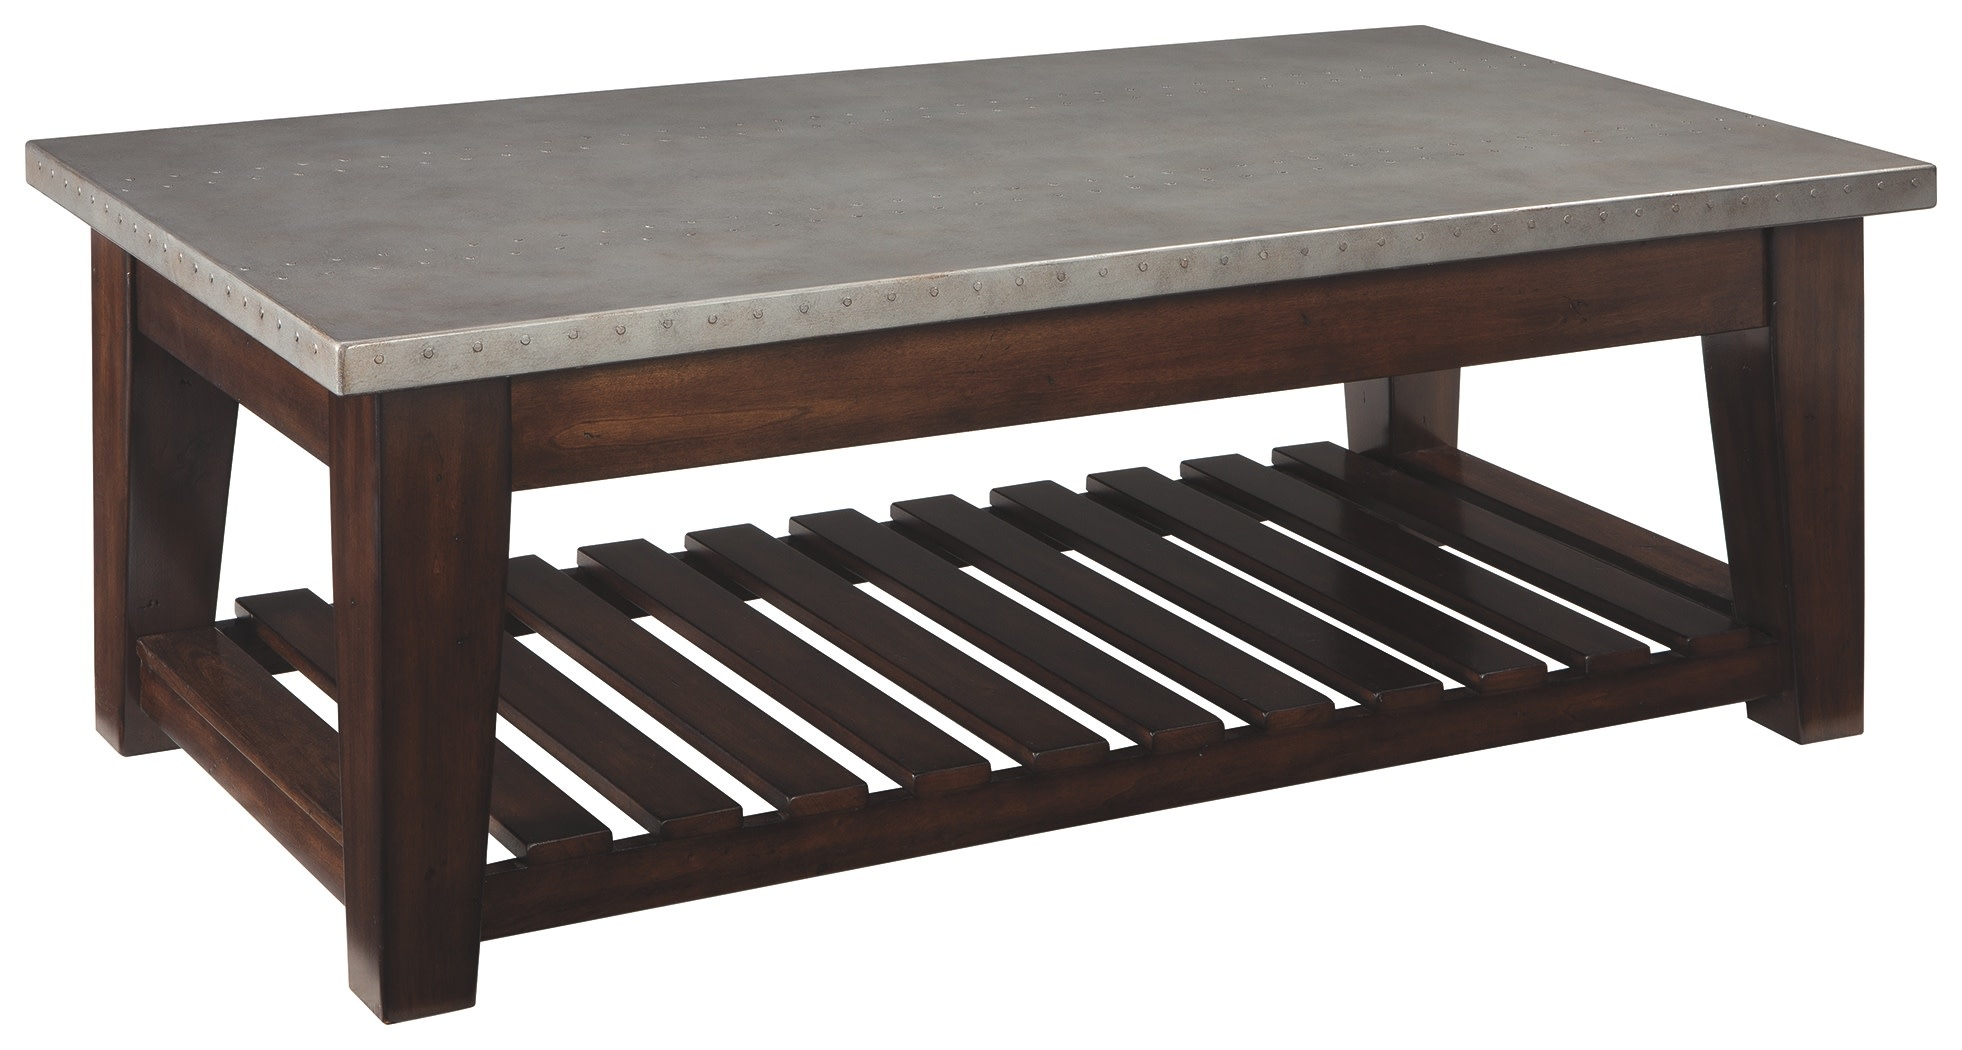 Signature Design Bynderman Lift Top Cocktail Table- Brown/Silver Finish T882-9